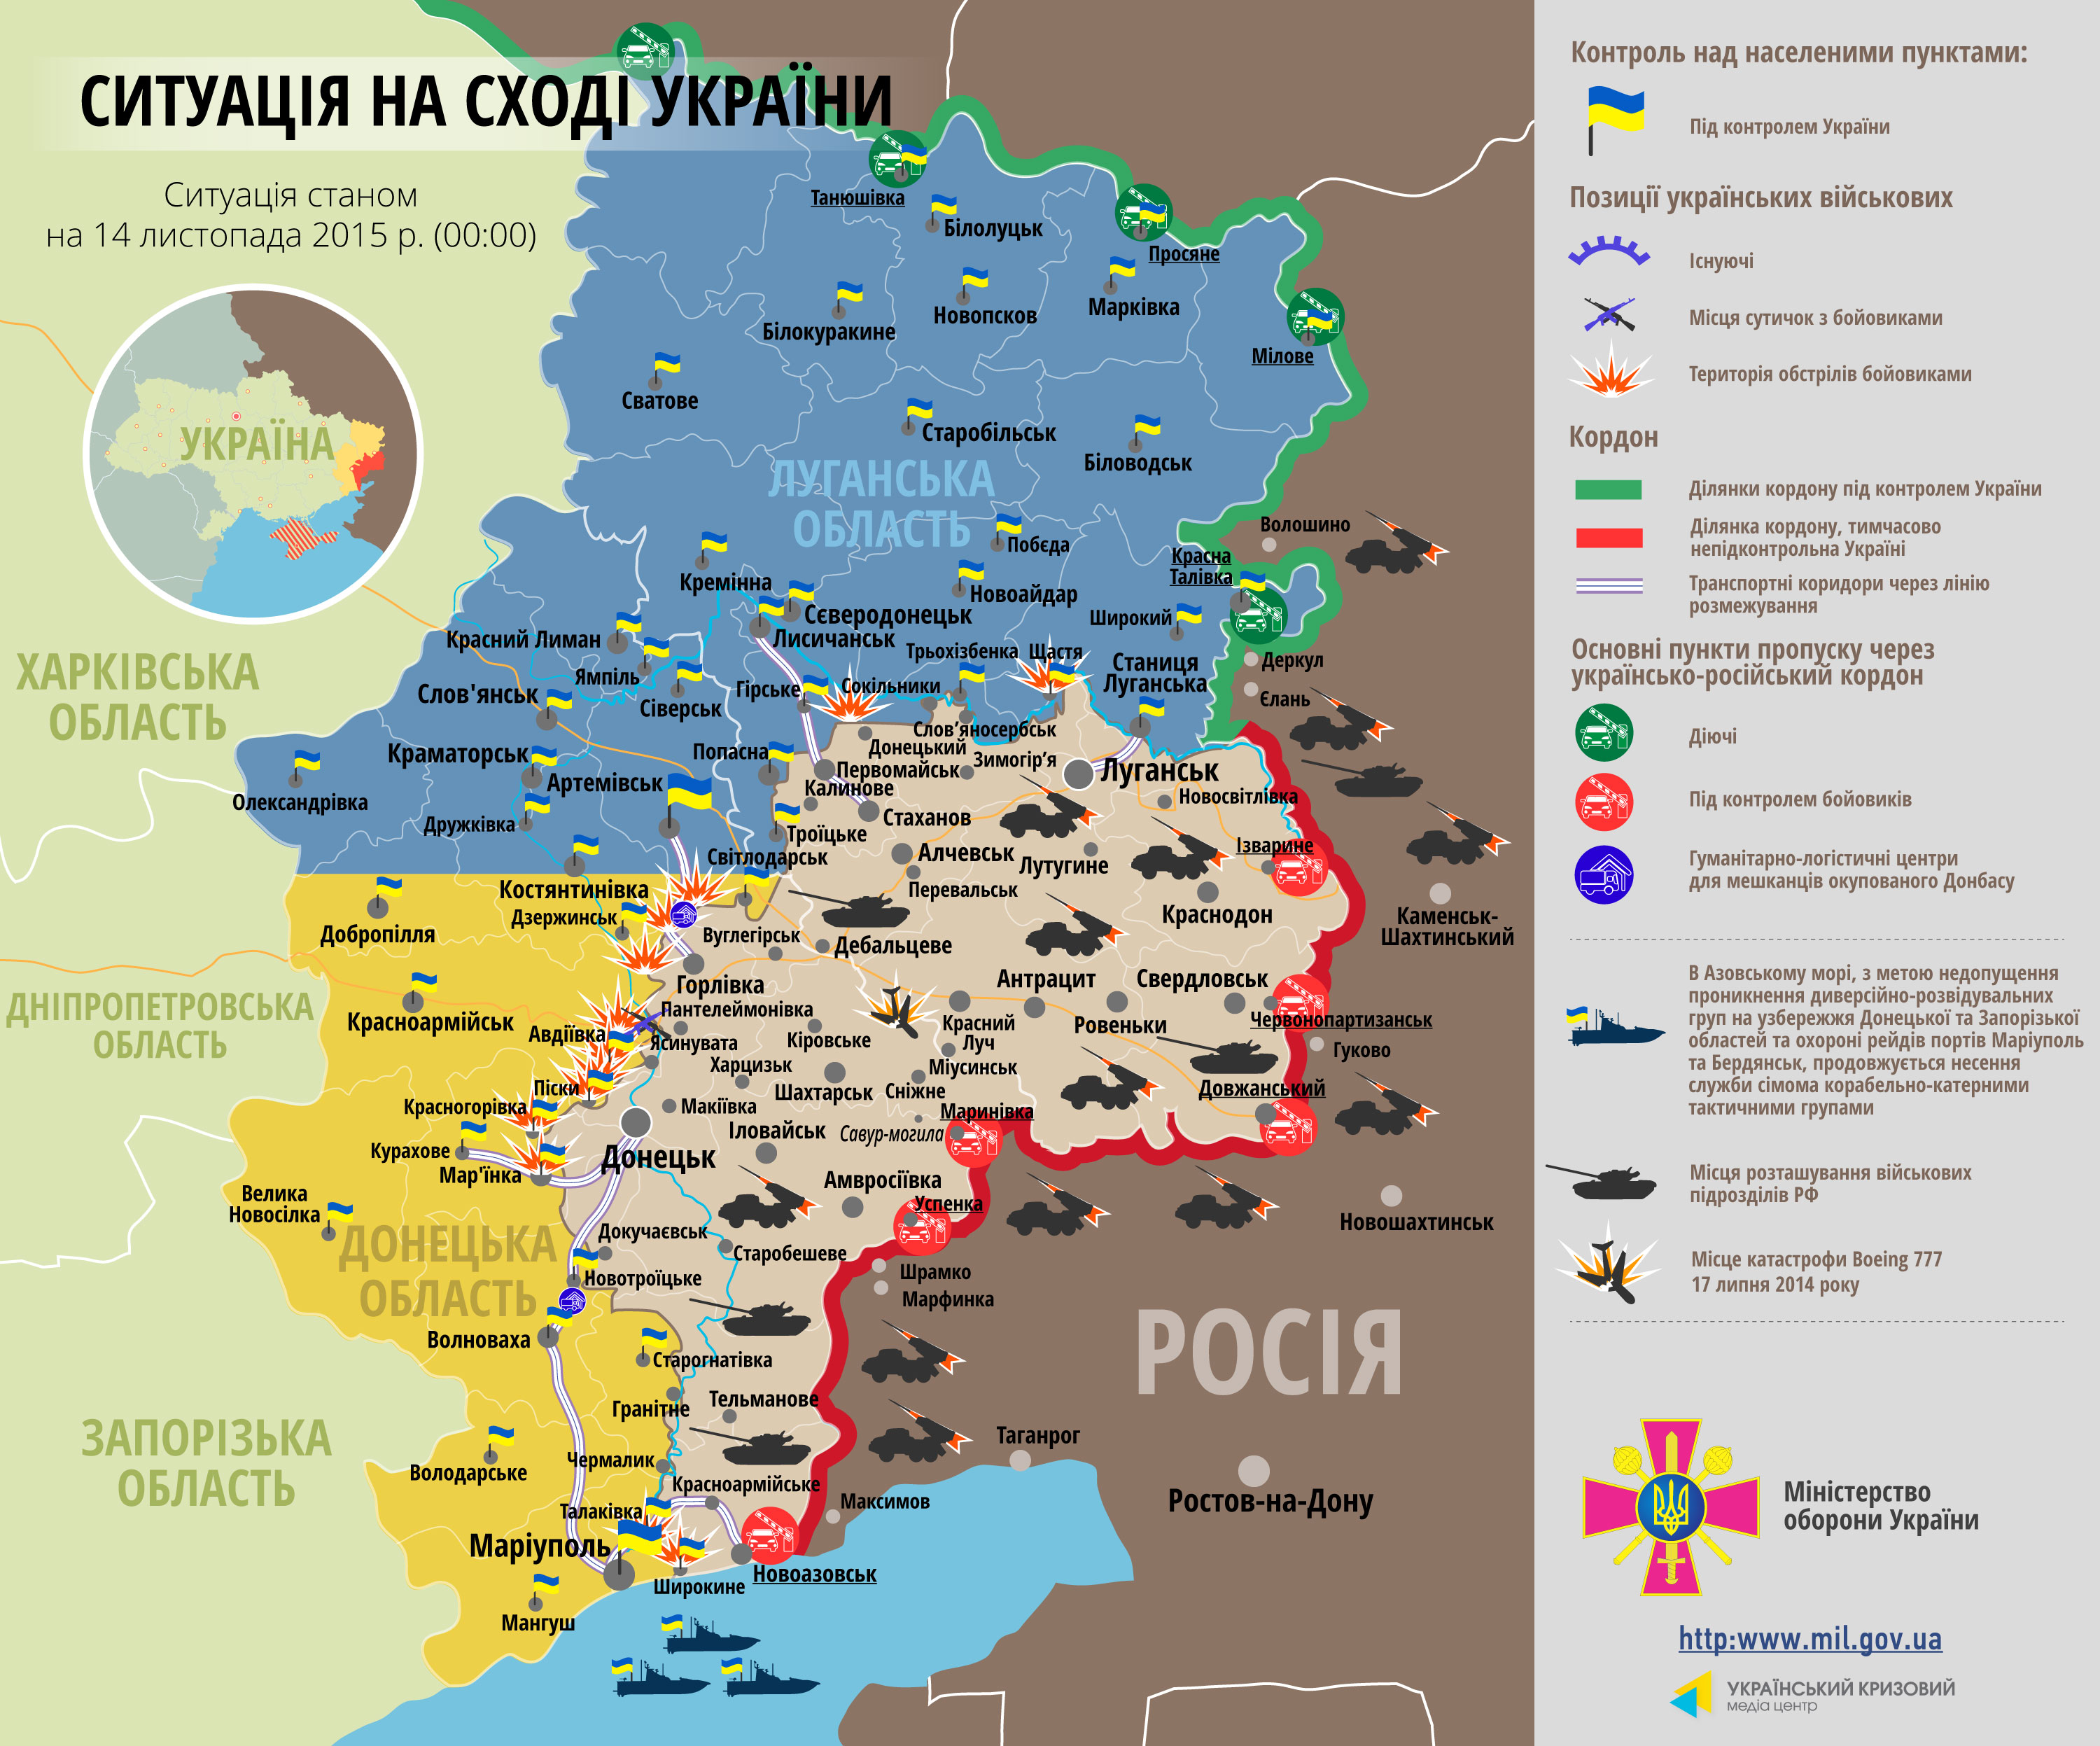 Map on situation in the ATO zone today